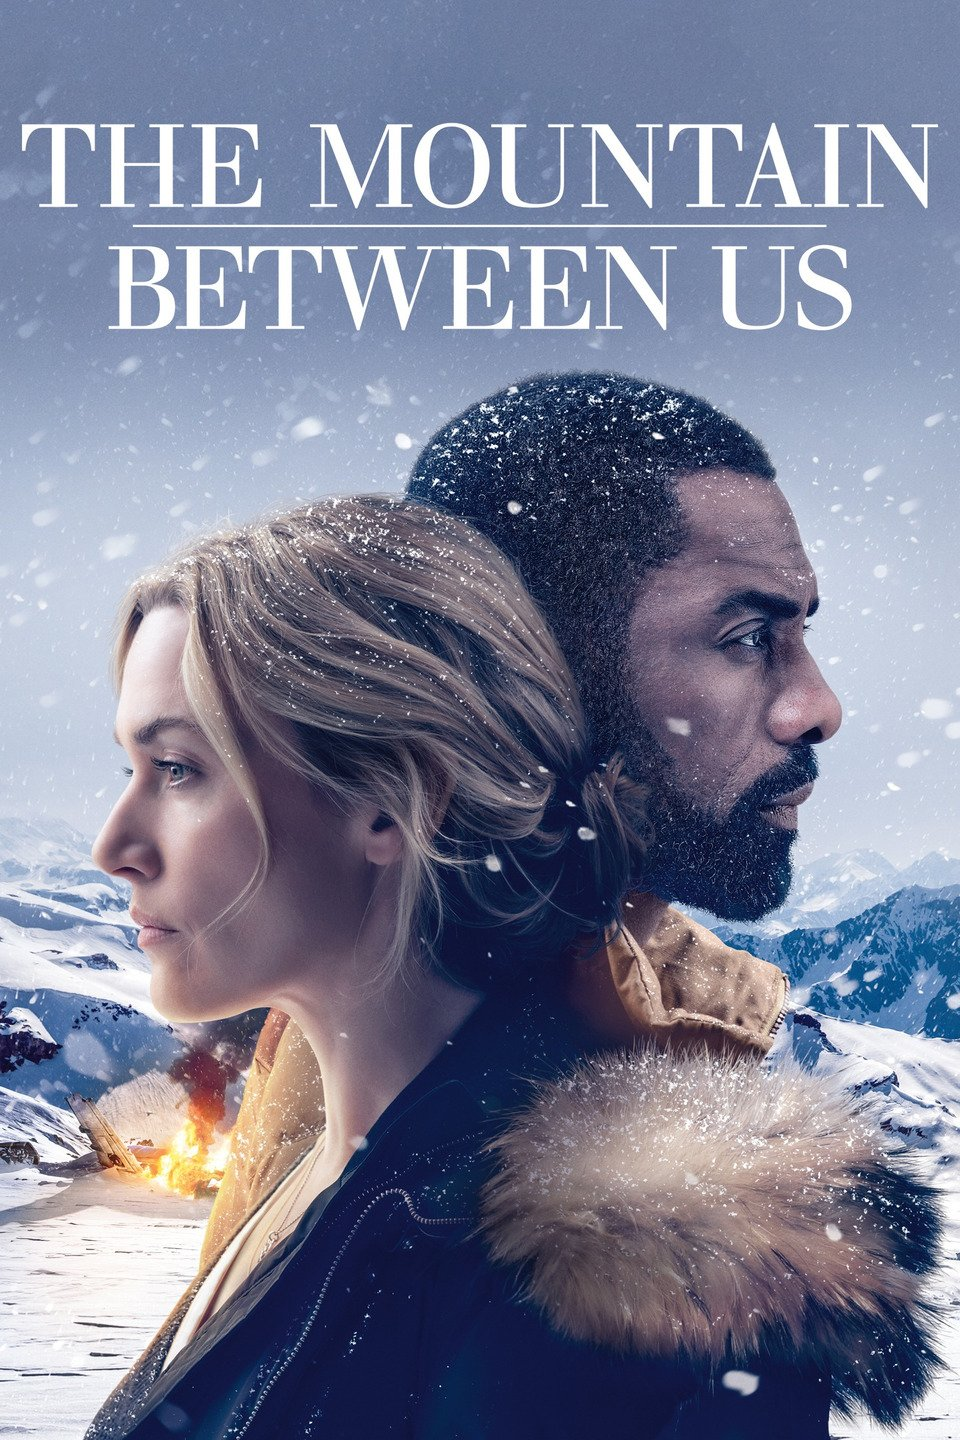 The Mountain Between Us [2017] [DVDR] [NTSC] [CUSTOM BD] [Latino]